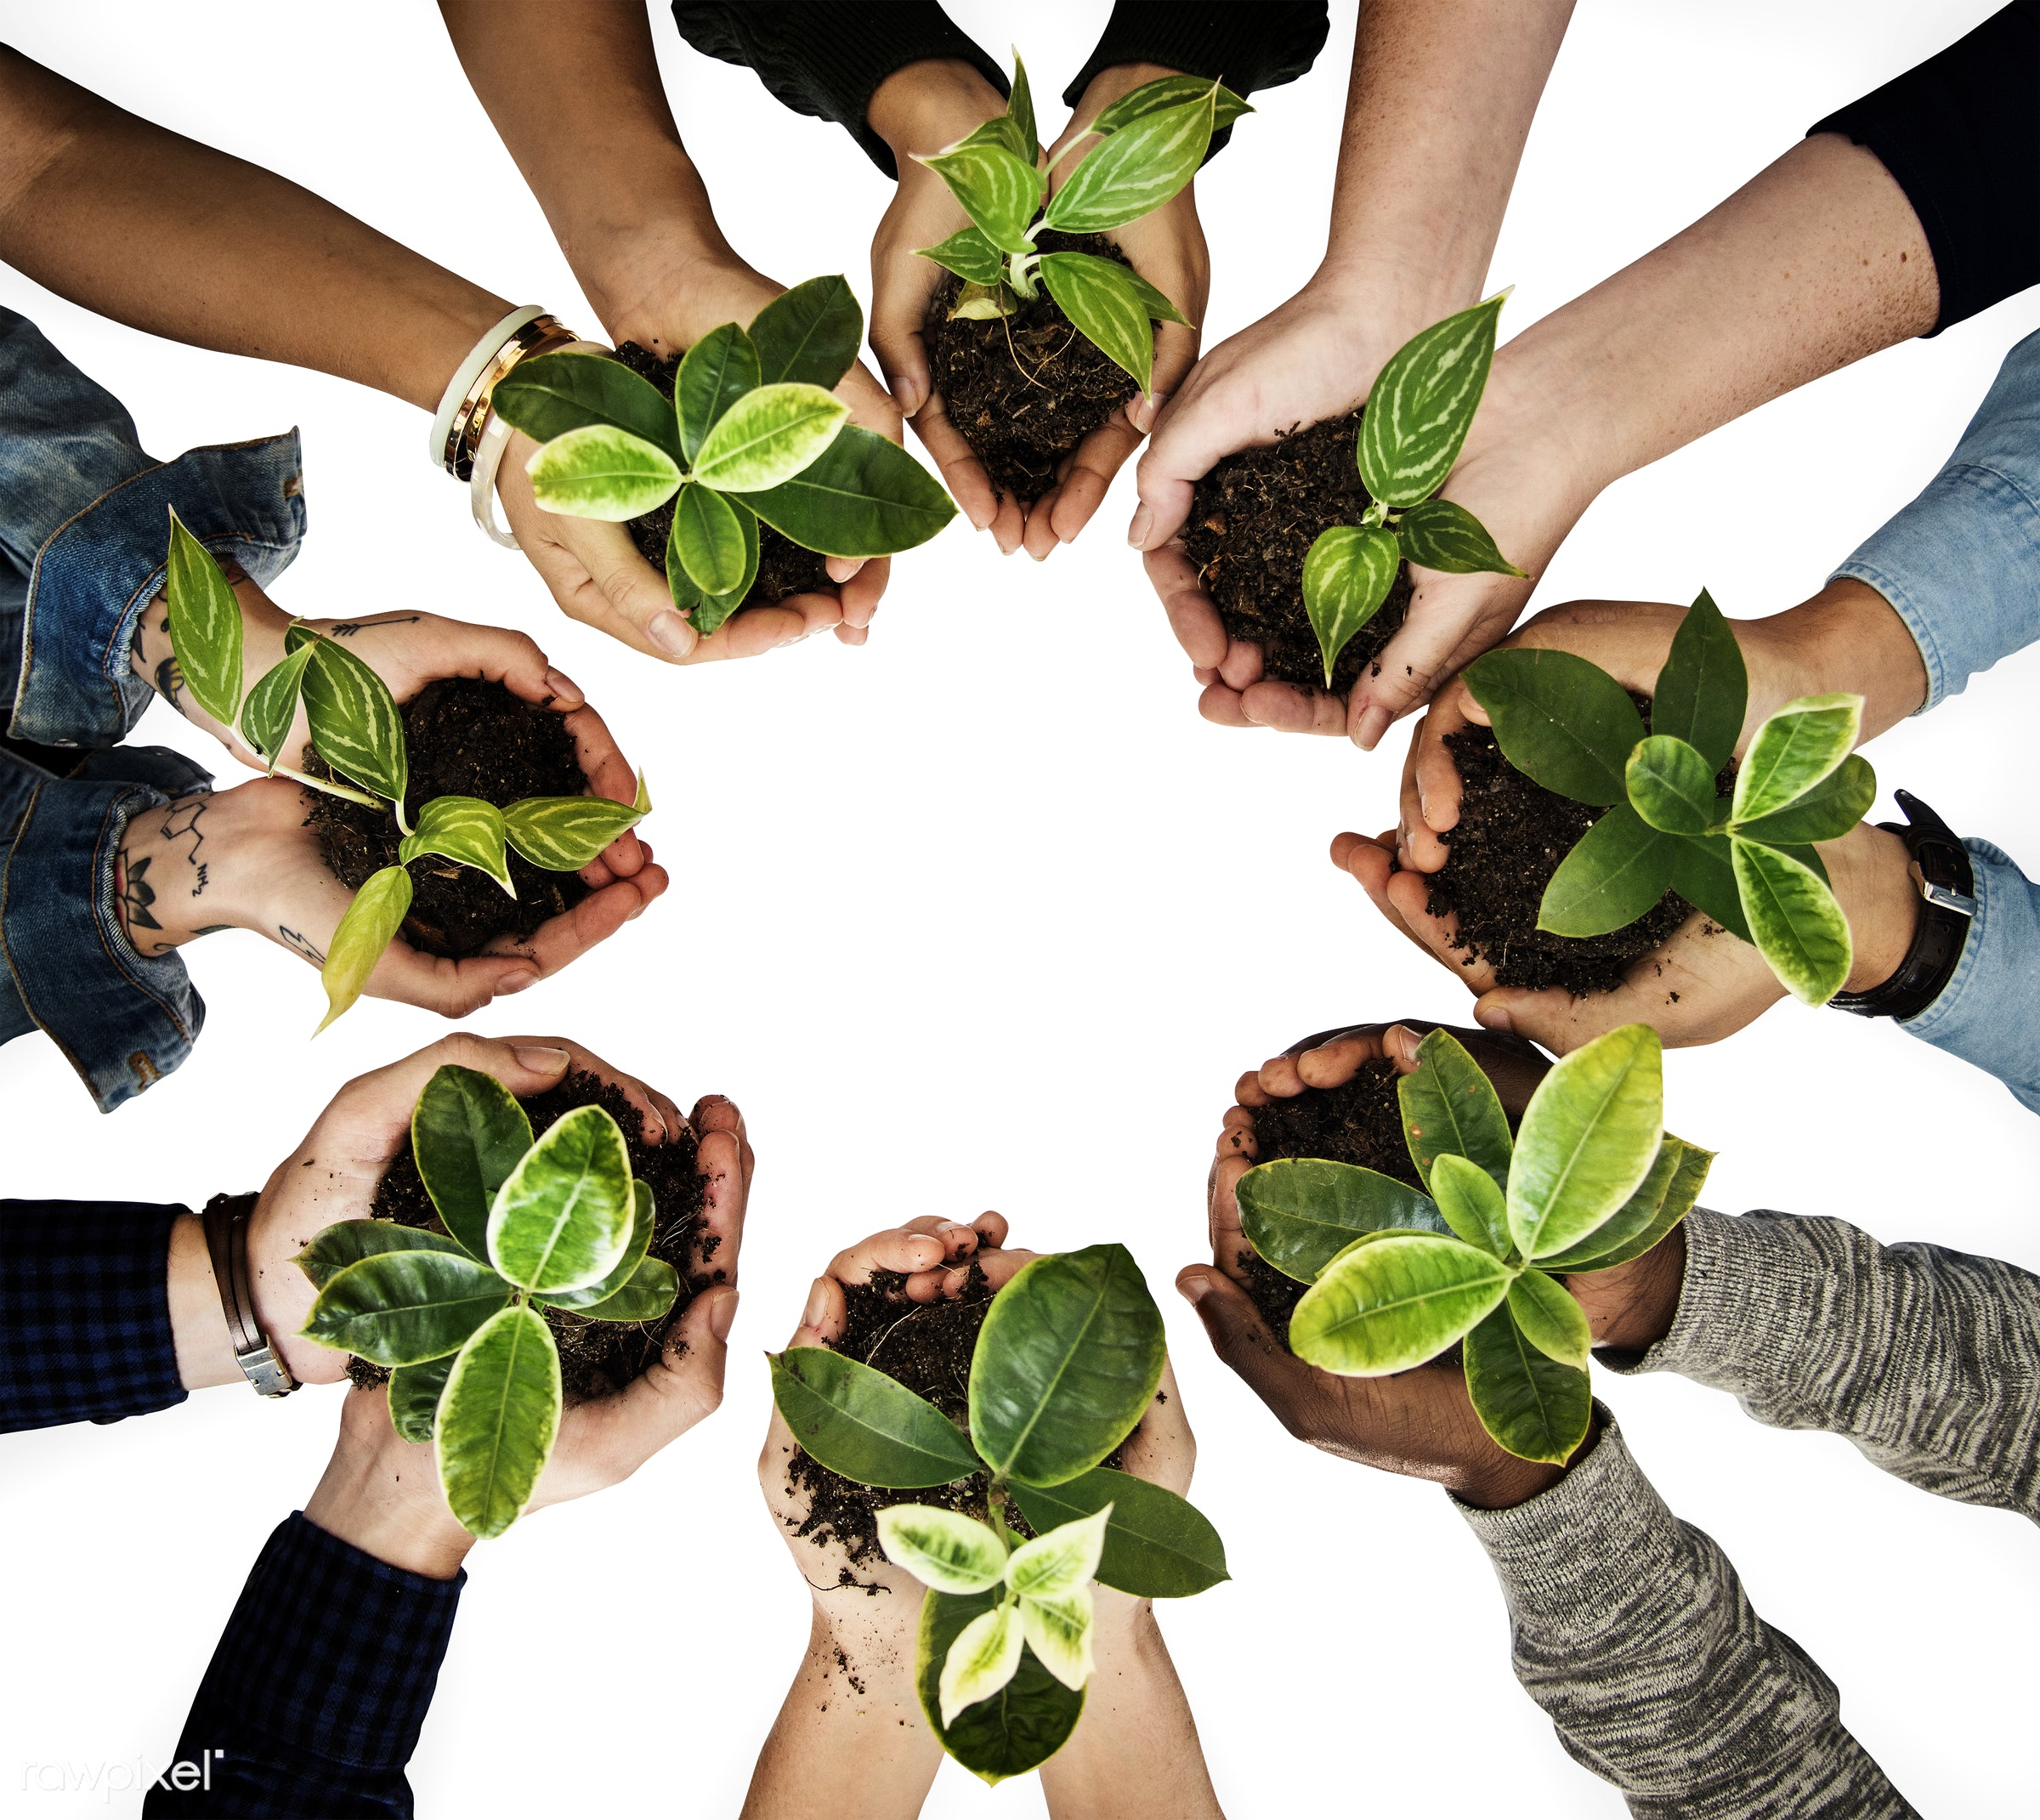 Diverse people holding plants in their hands - accessories, agriculture, background, beginning, botanical, care, casual...